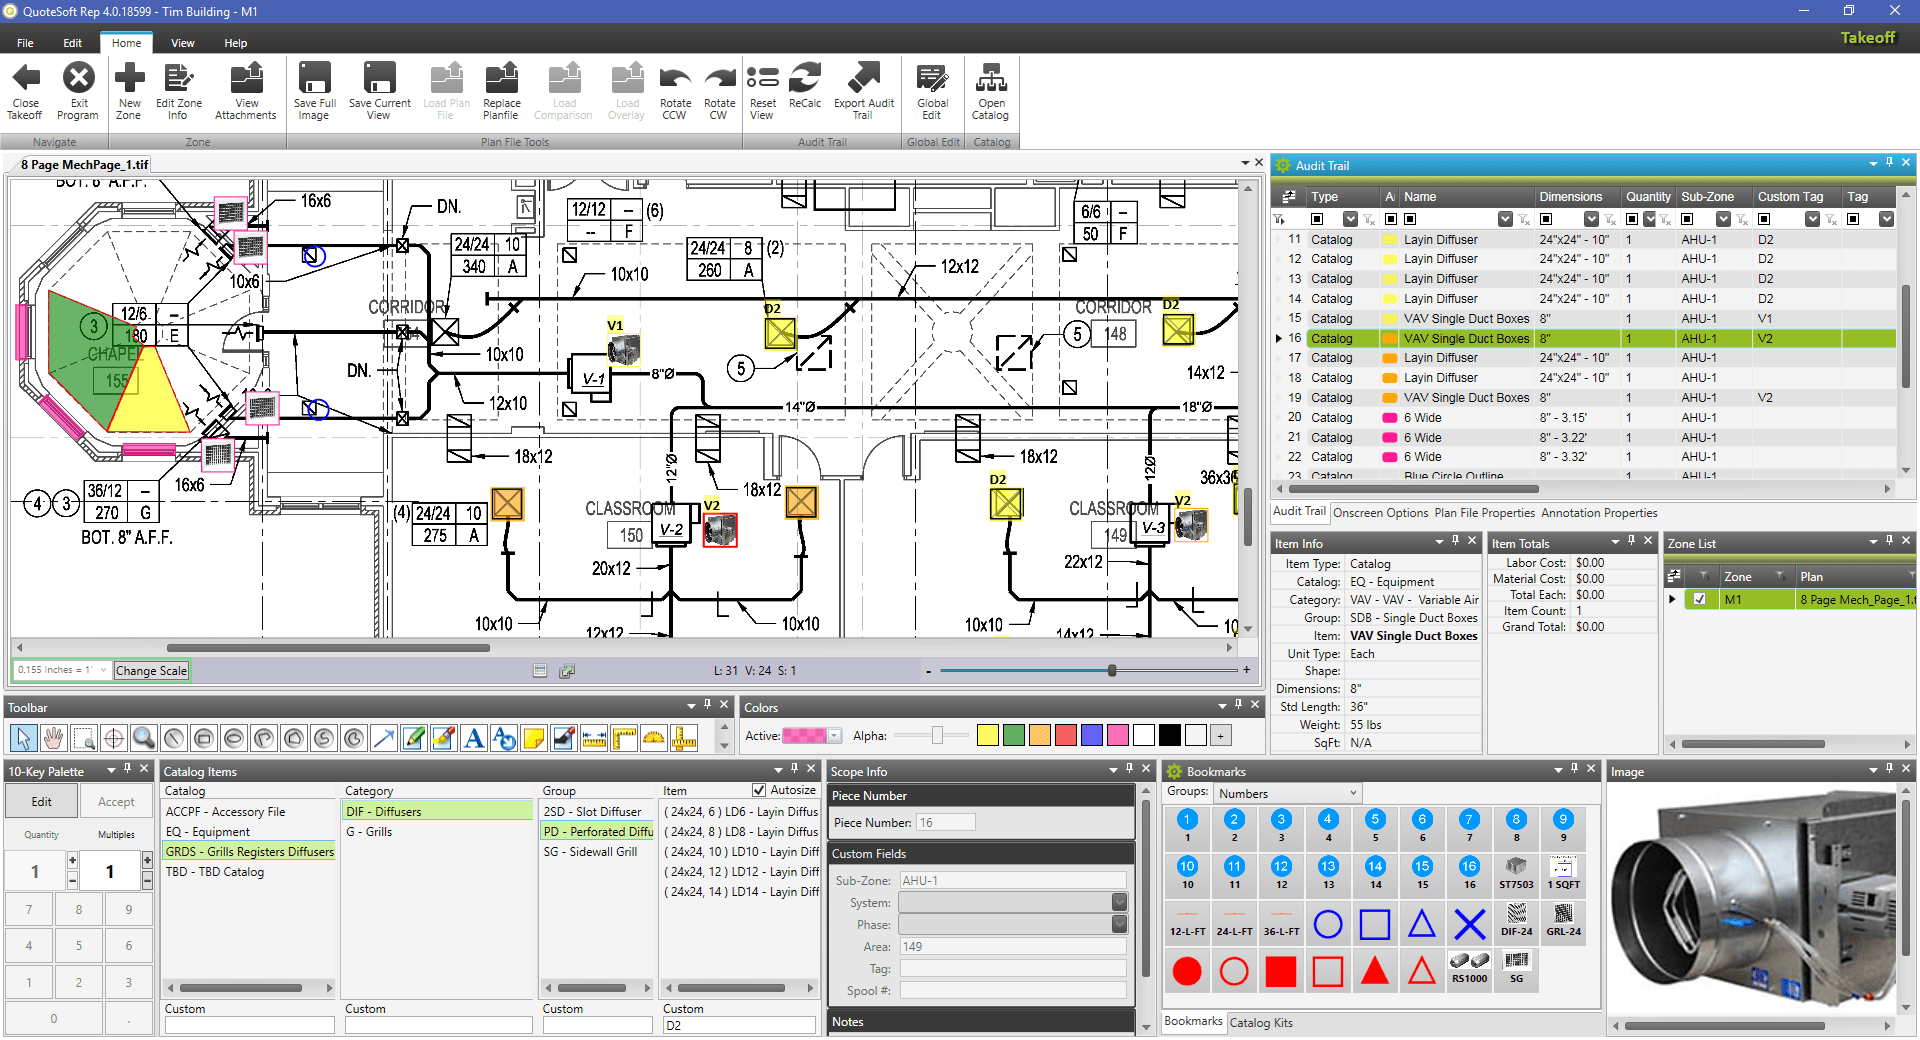 Rep Takeoff Quotesoft Plumbing Diagram Software With Our Screen Driven You Simply Select The Item And Automatically Appropriate Sizes Are Immediately Ready To Be Input Right Down